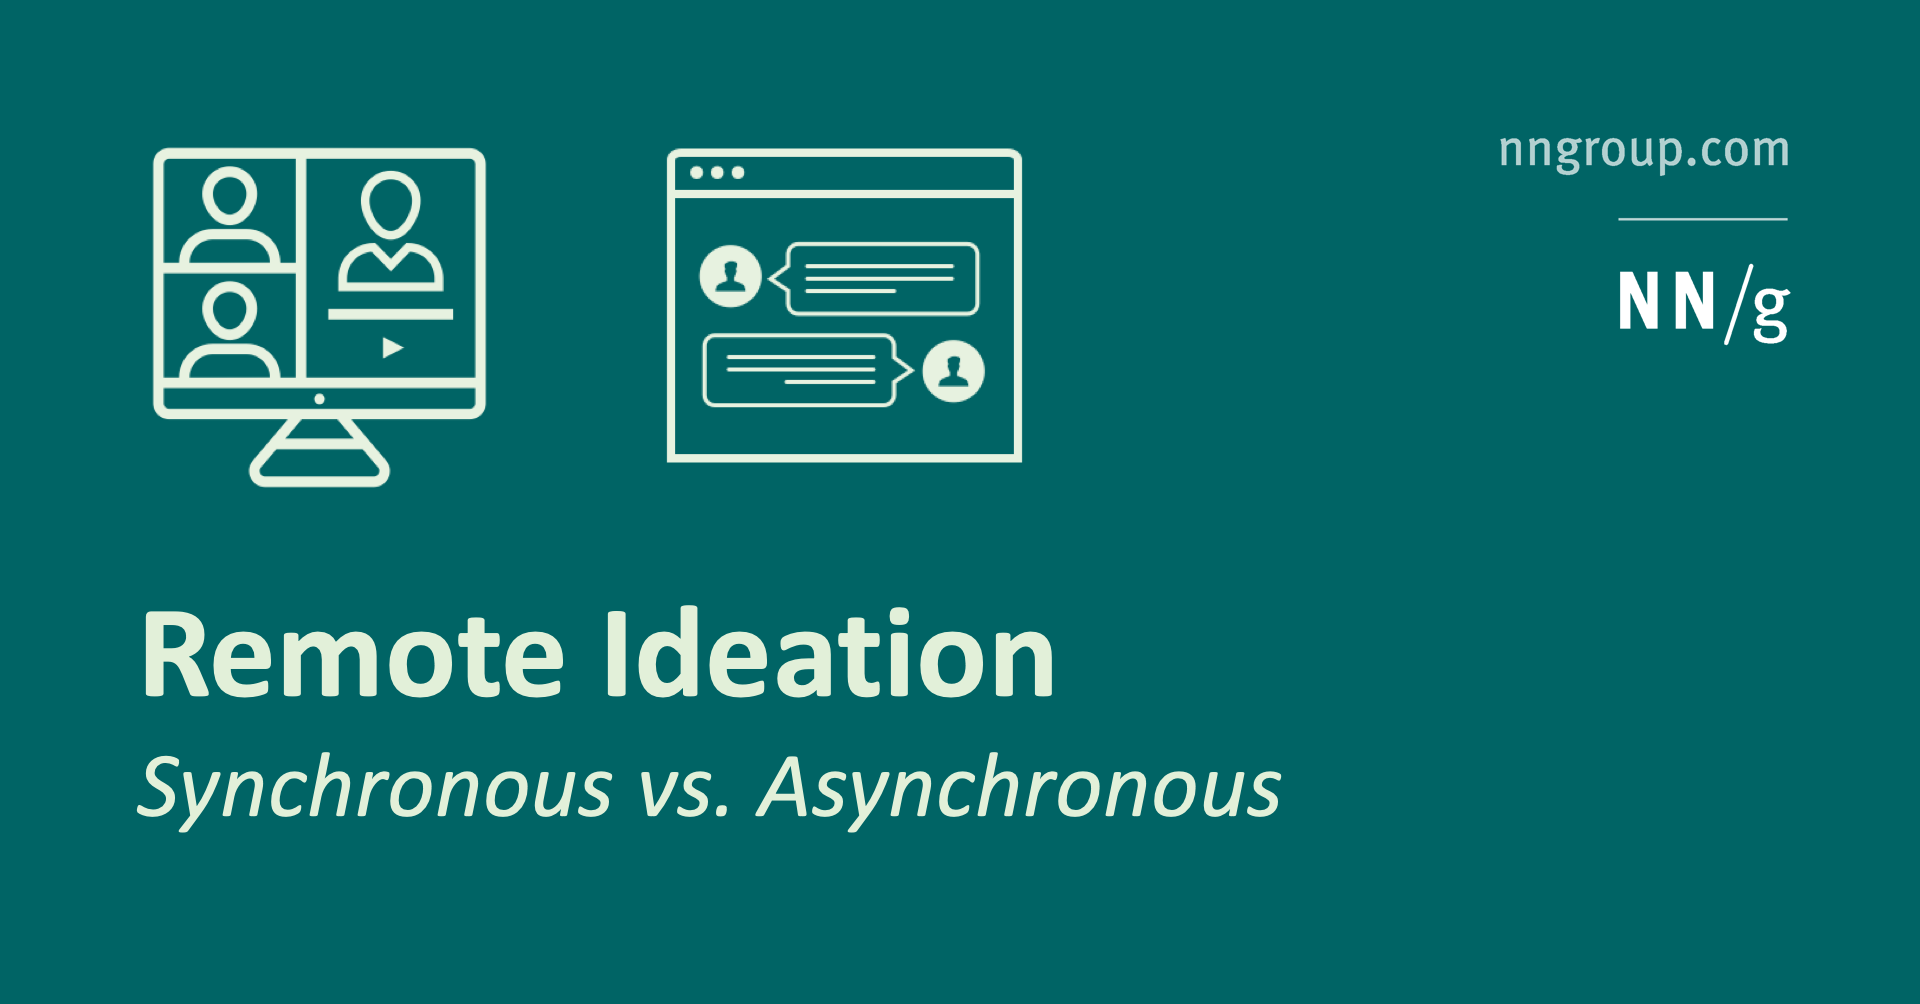 Remote Ideation: Synchronous vs. Asynchronous